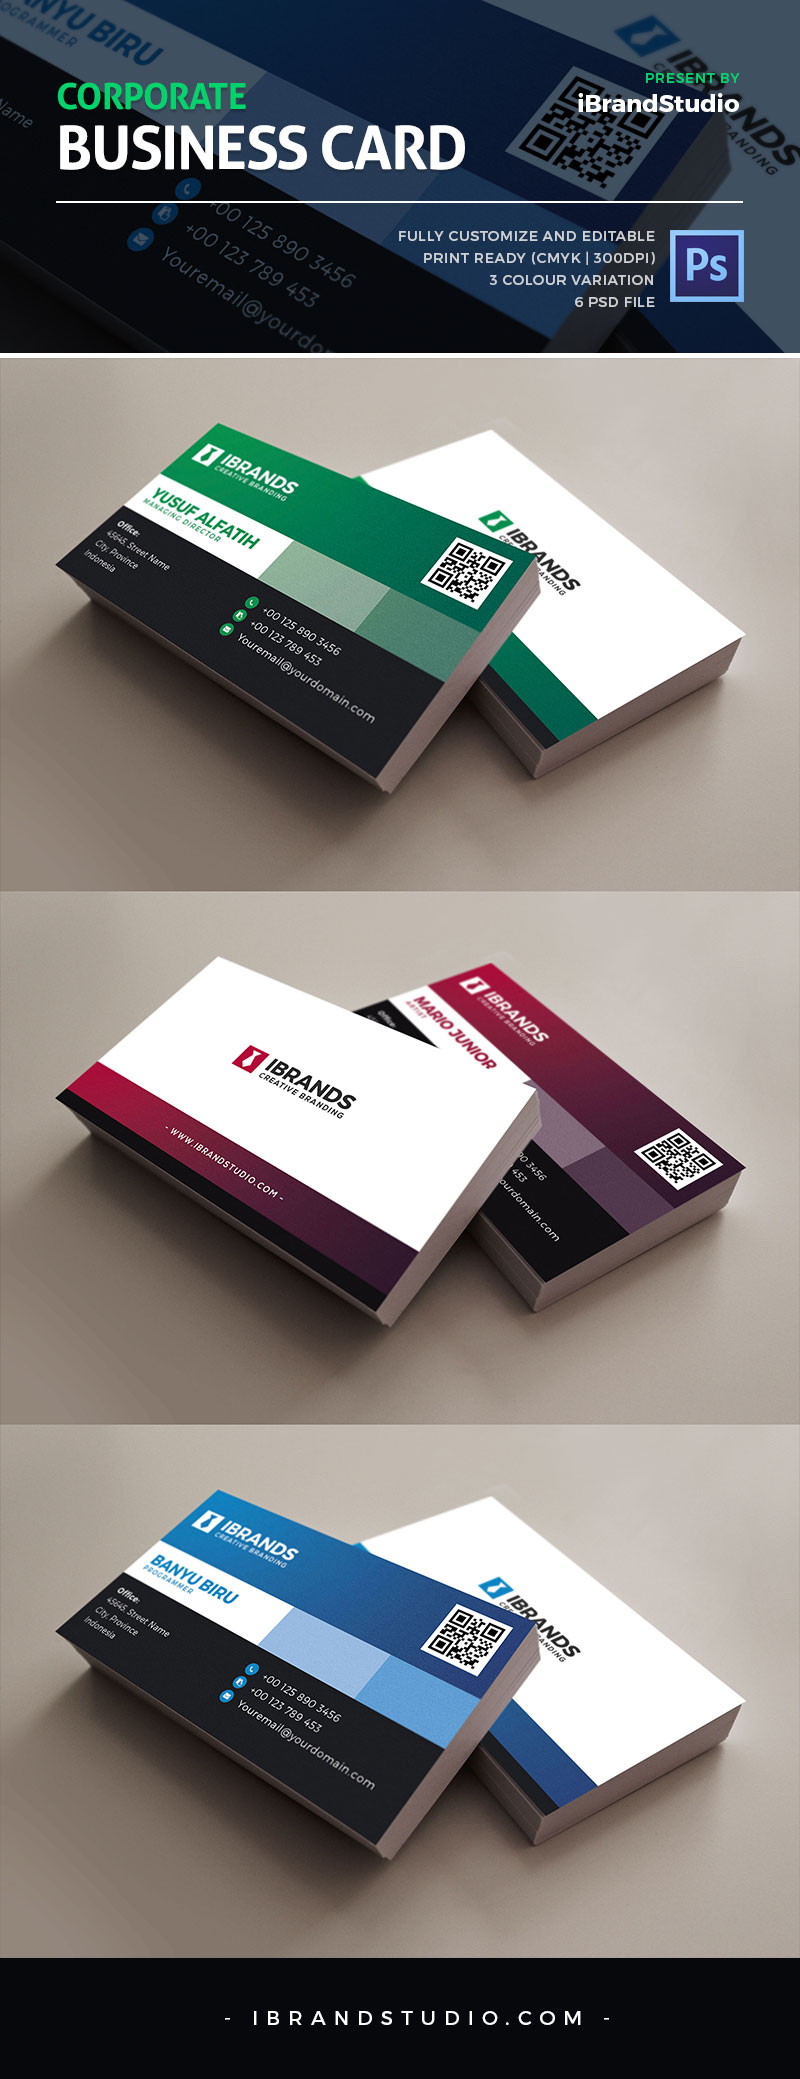 Free corporate business card template 3 colors for Business card colors